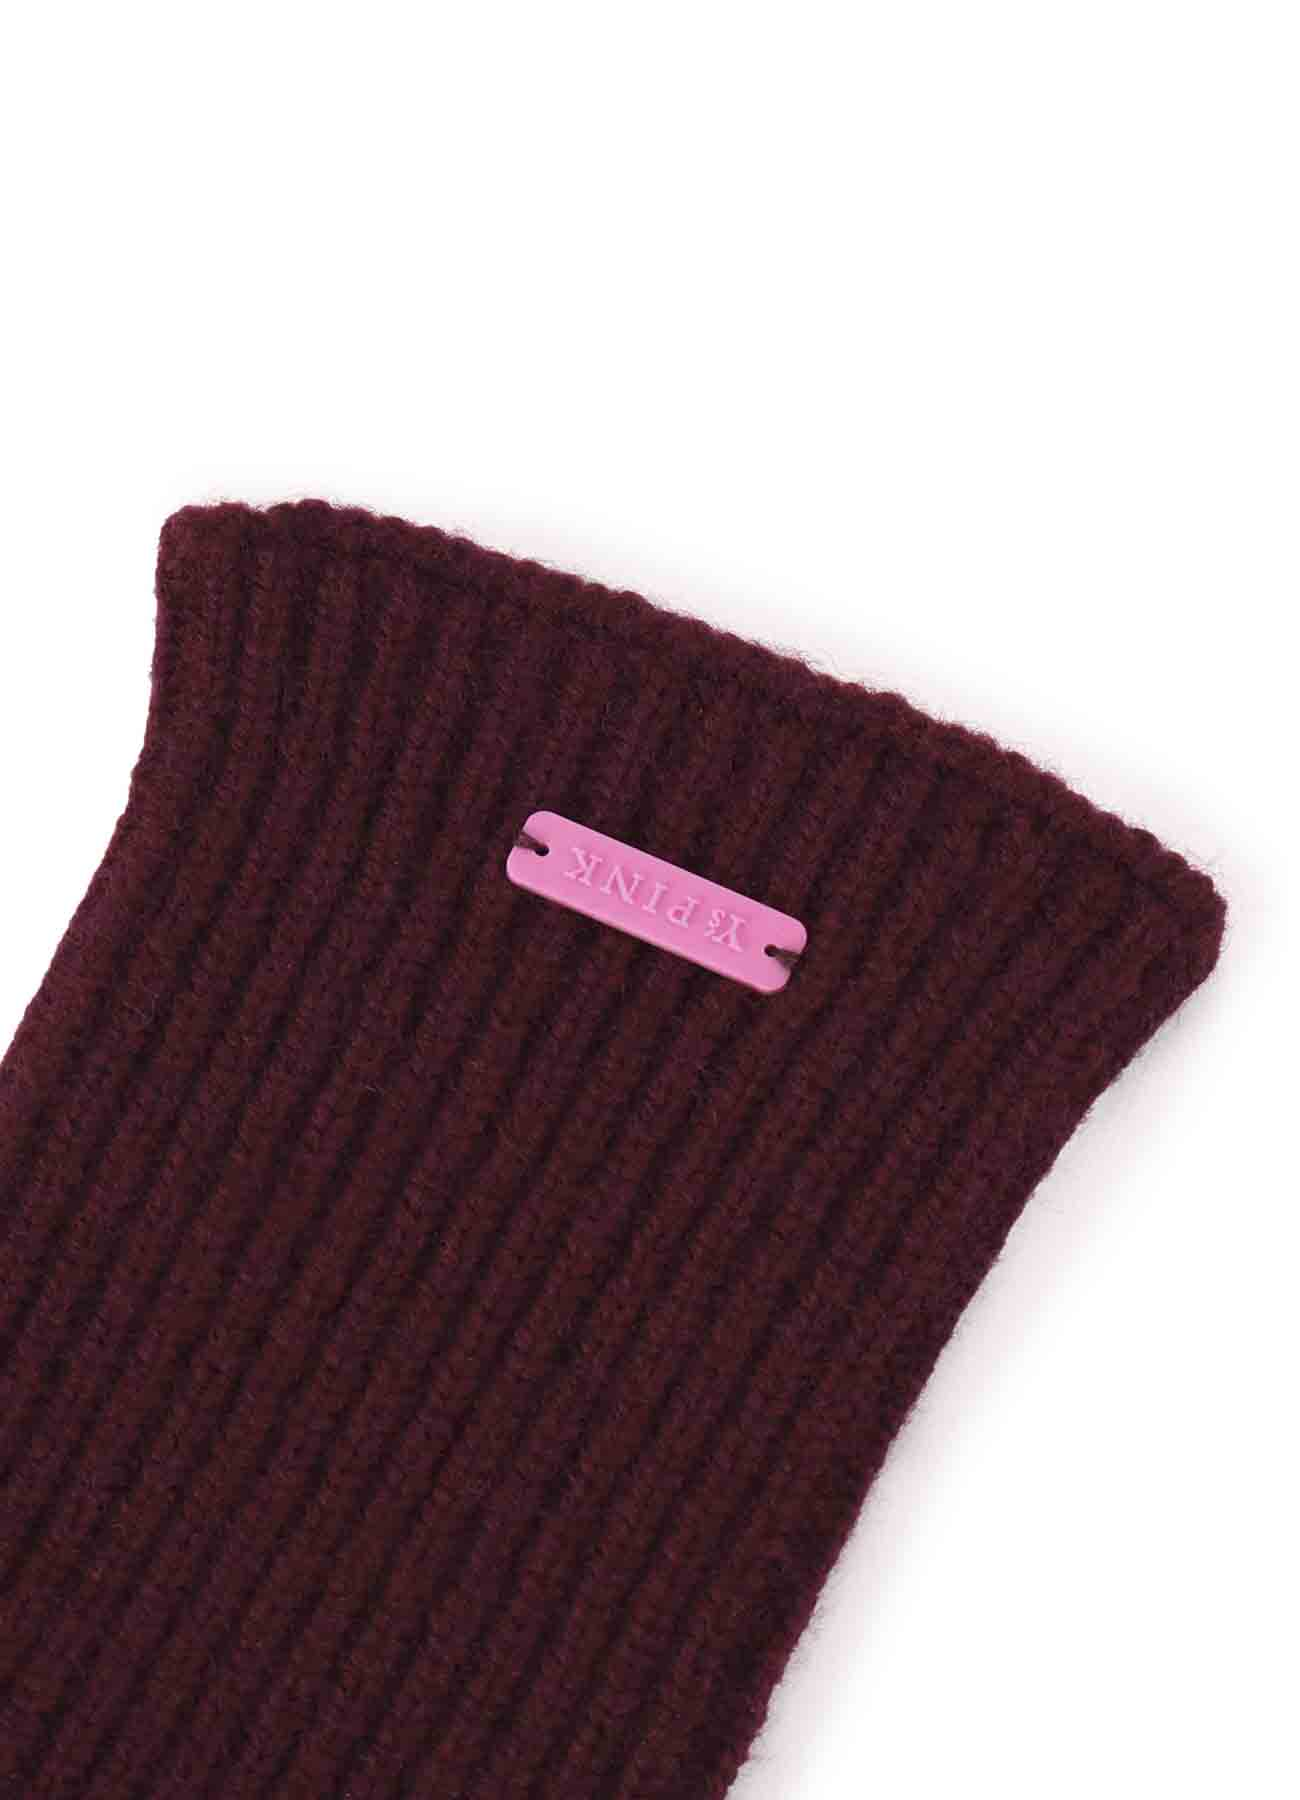 Y'sPINK COOMA LAMBS ARM WARMER